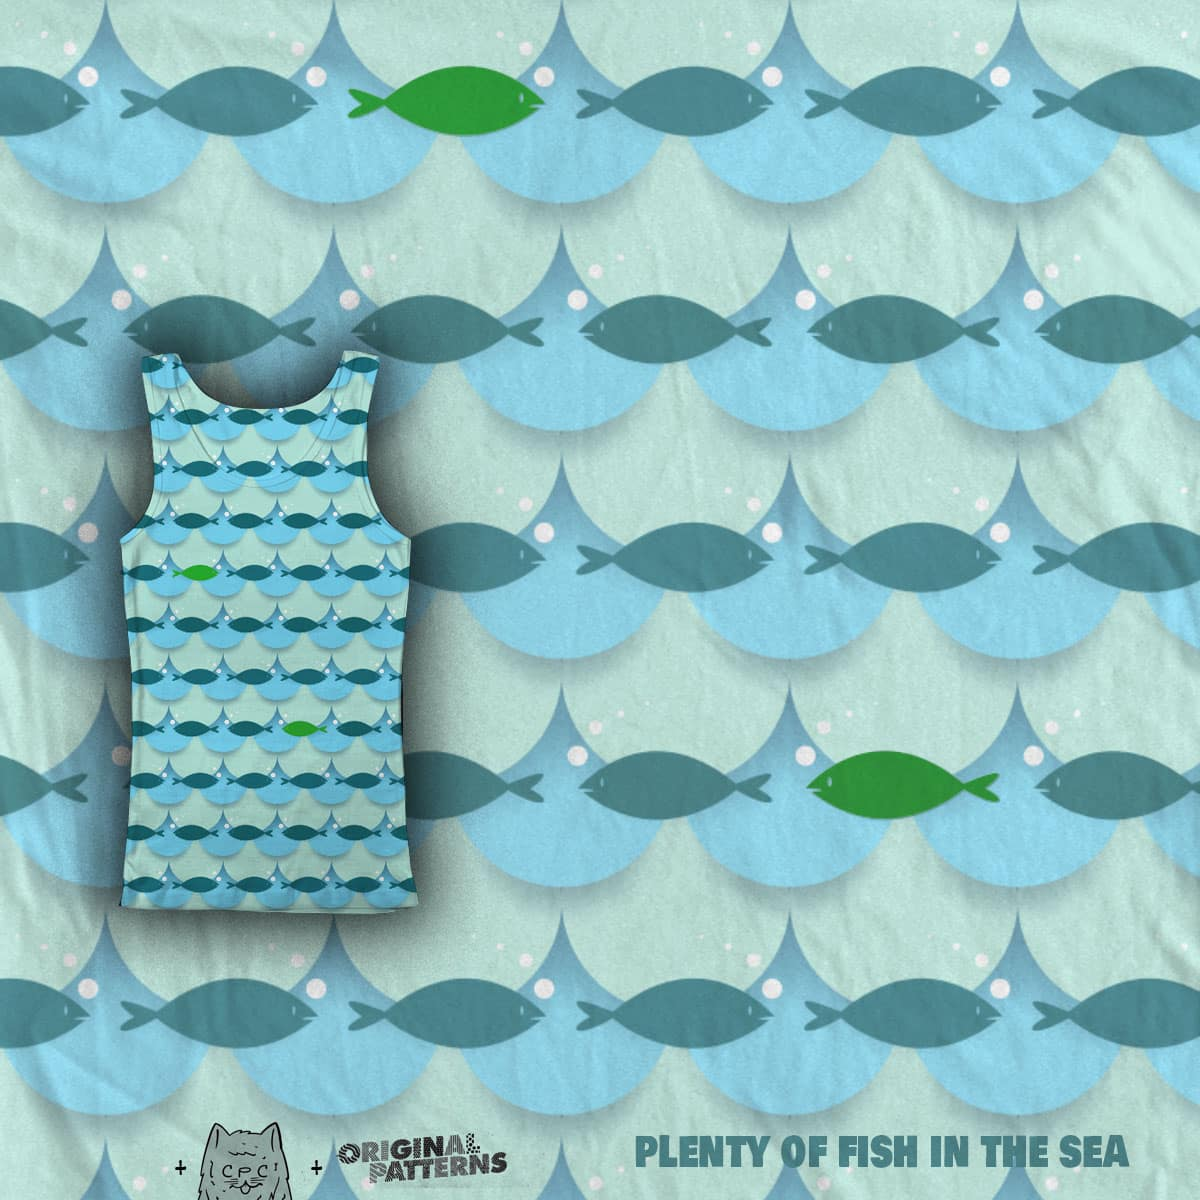 plenty of fish in the sea  by chuckpcomics on Threadless